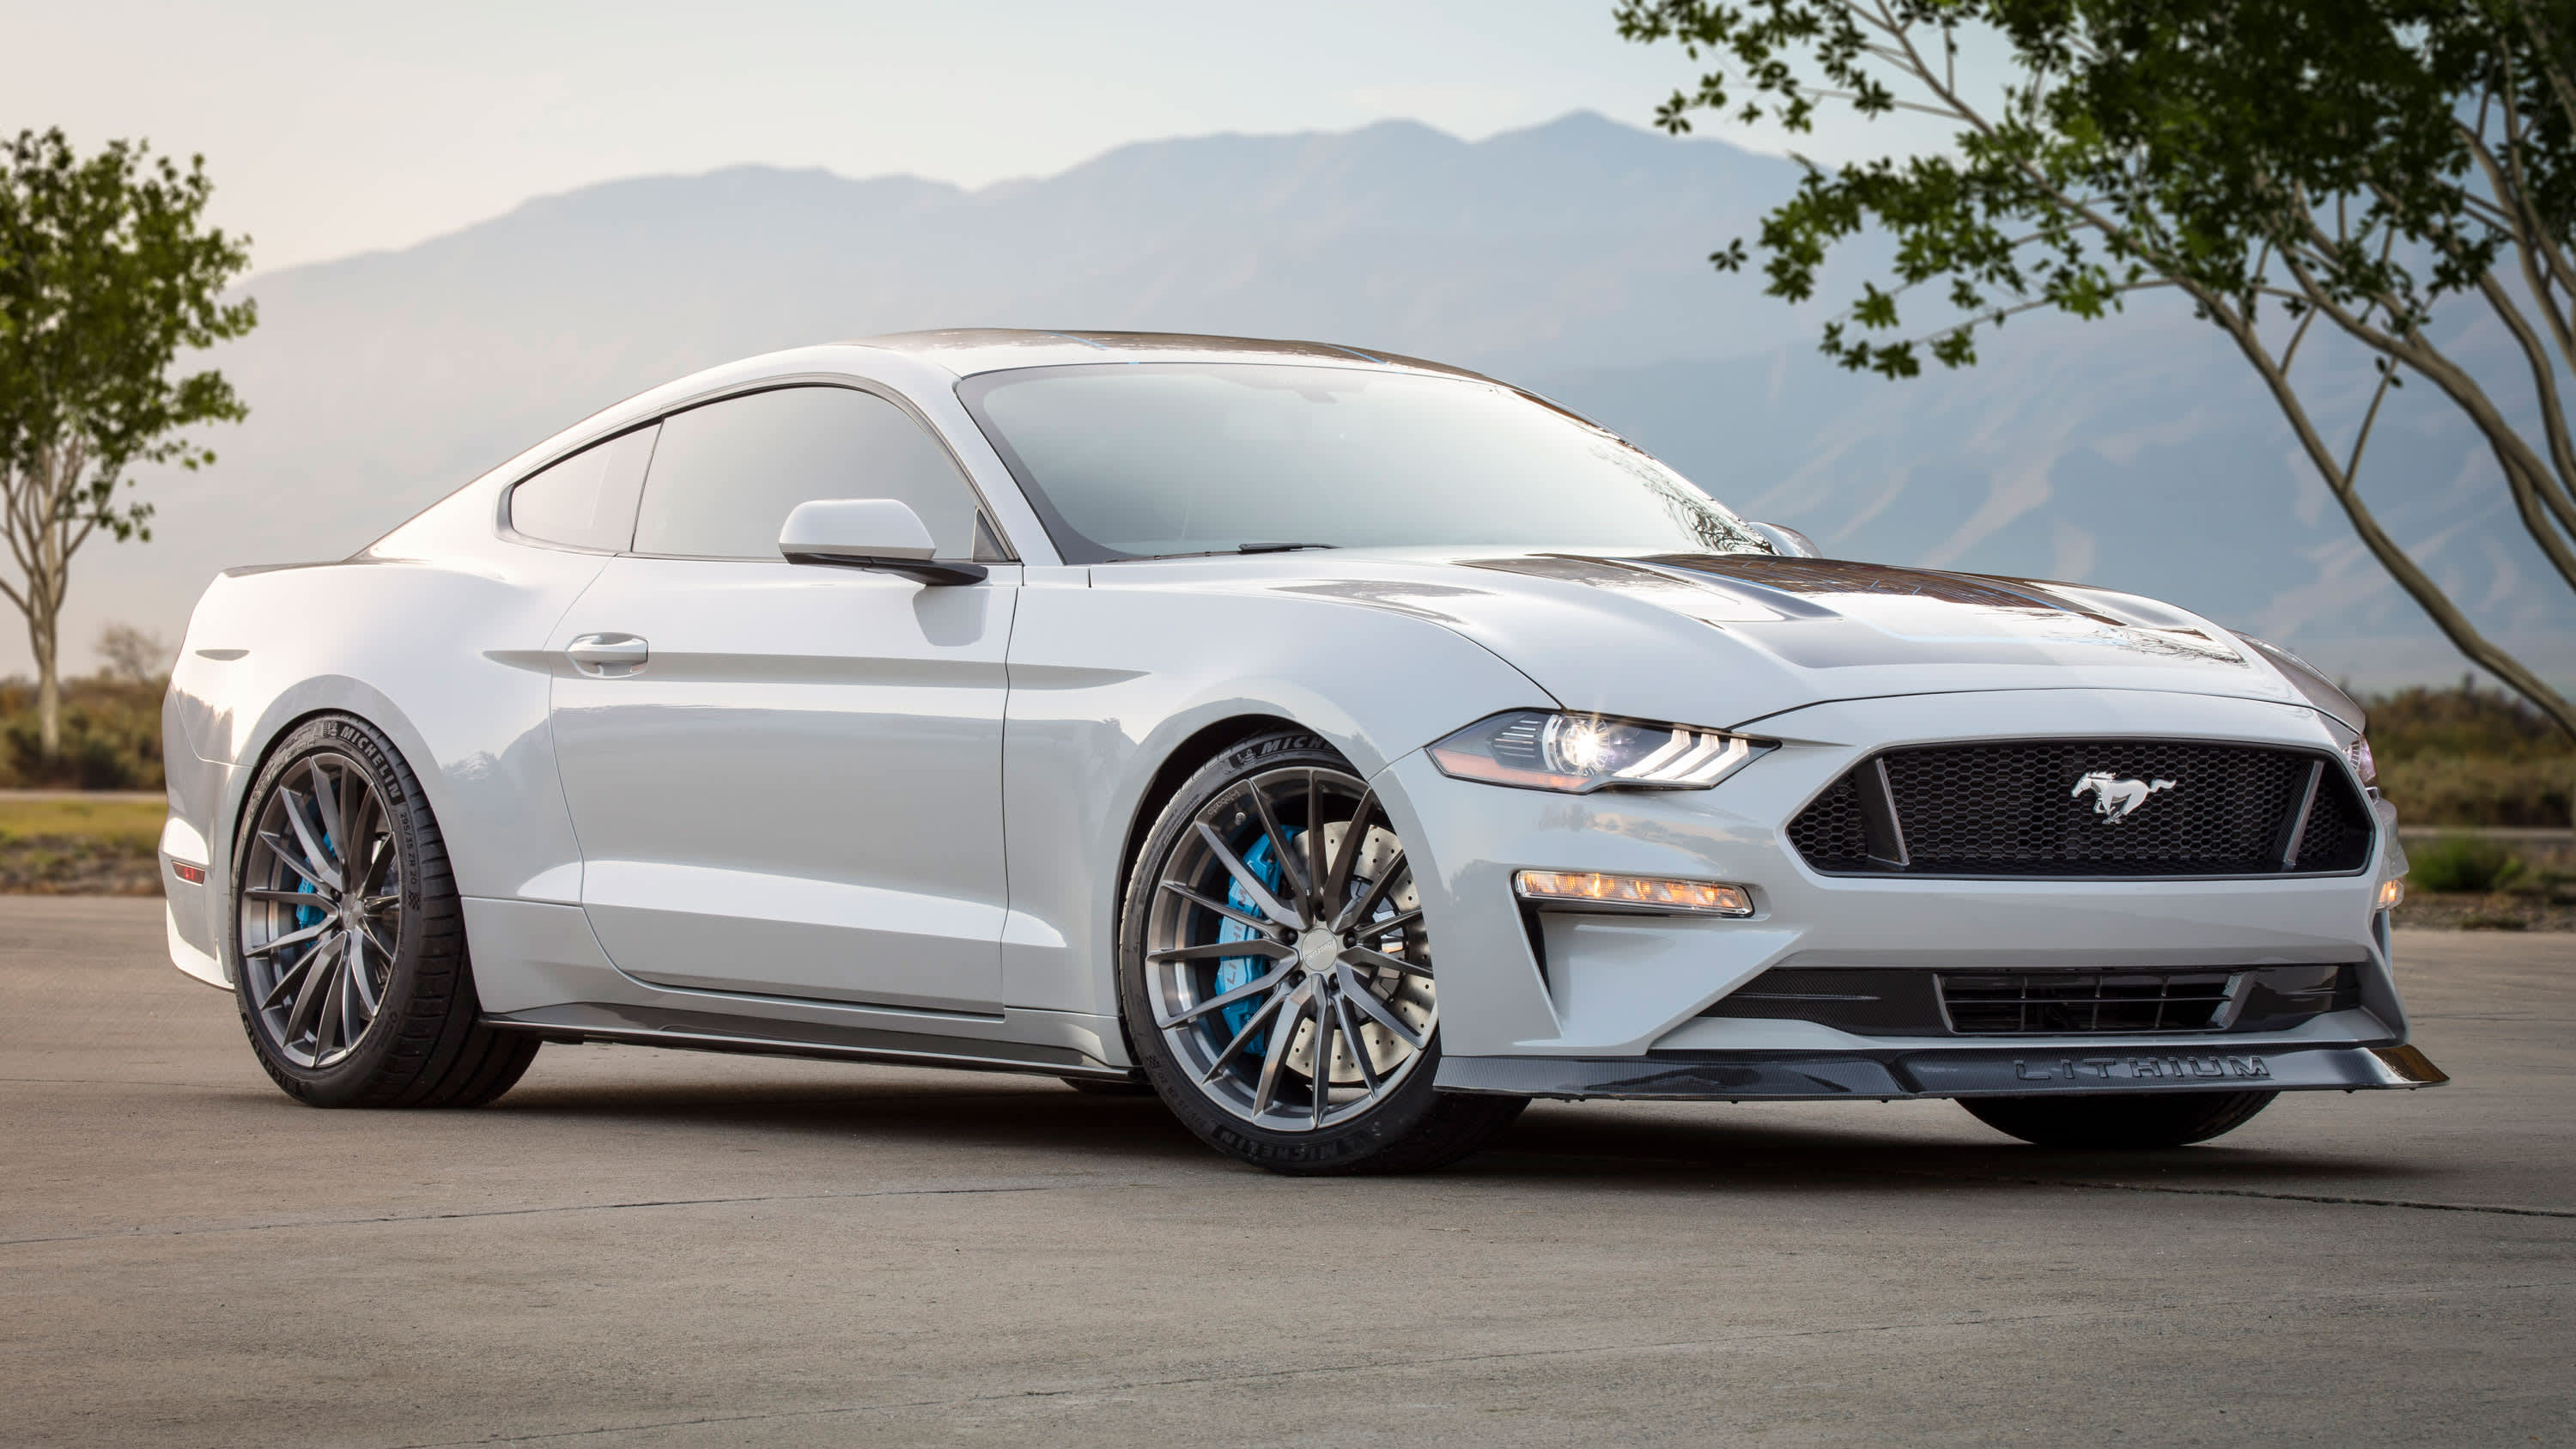 Auto parts companies show off new electric technology at SEMA show in Vegas